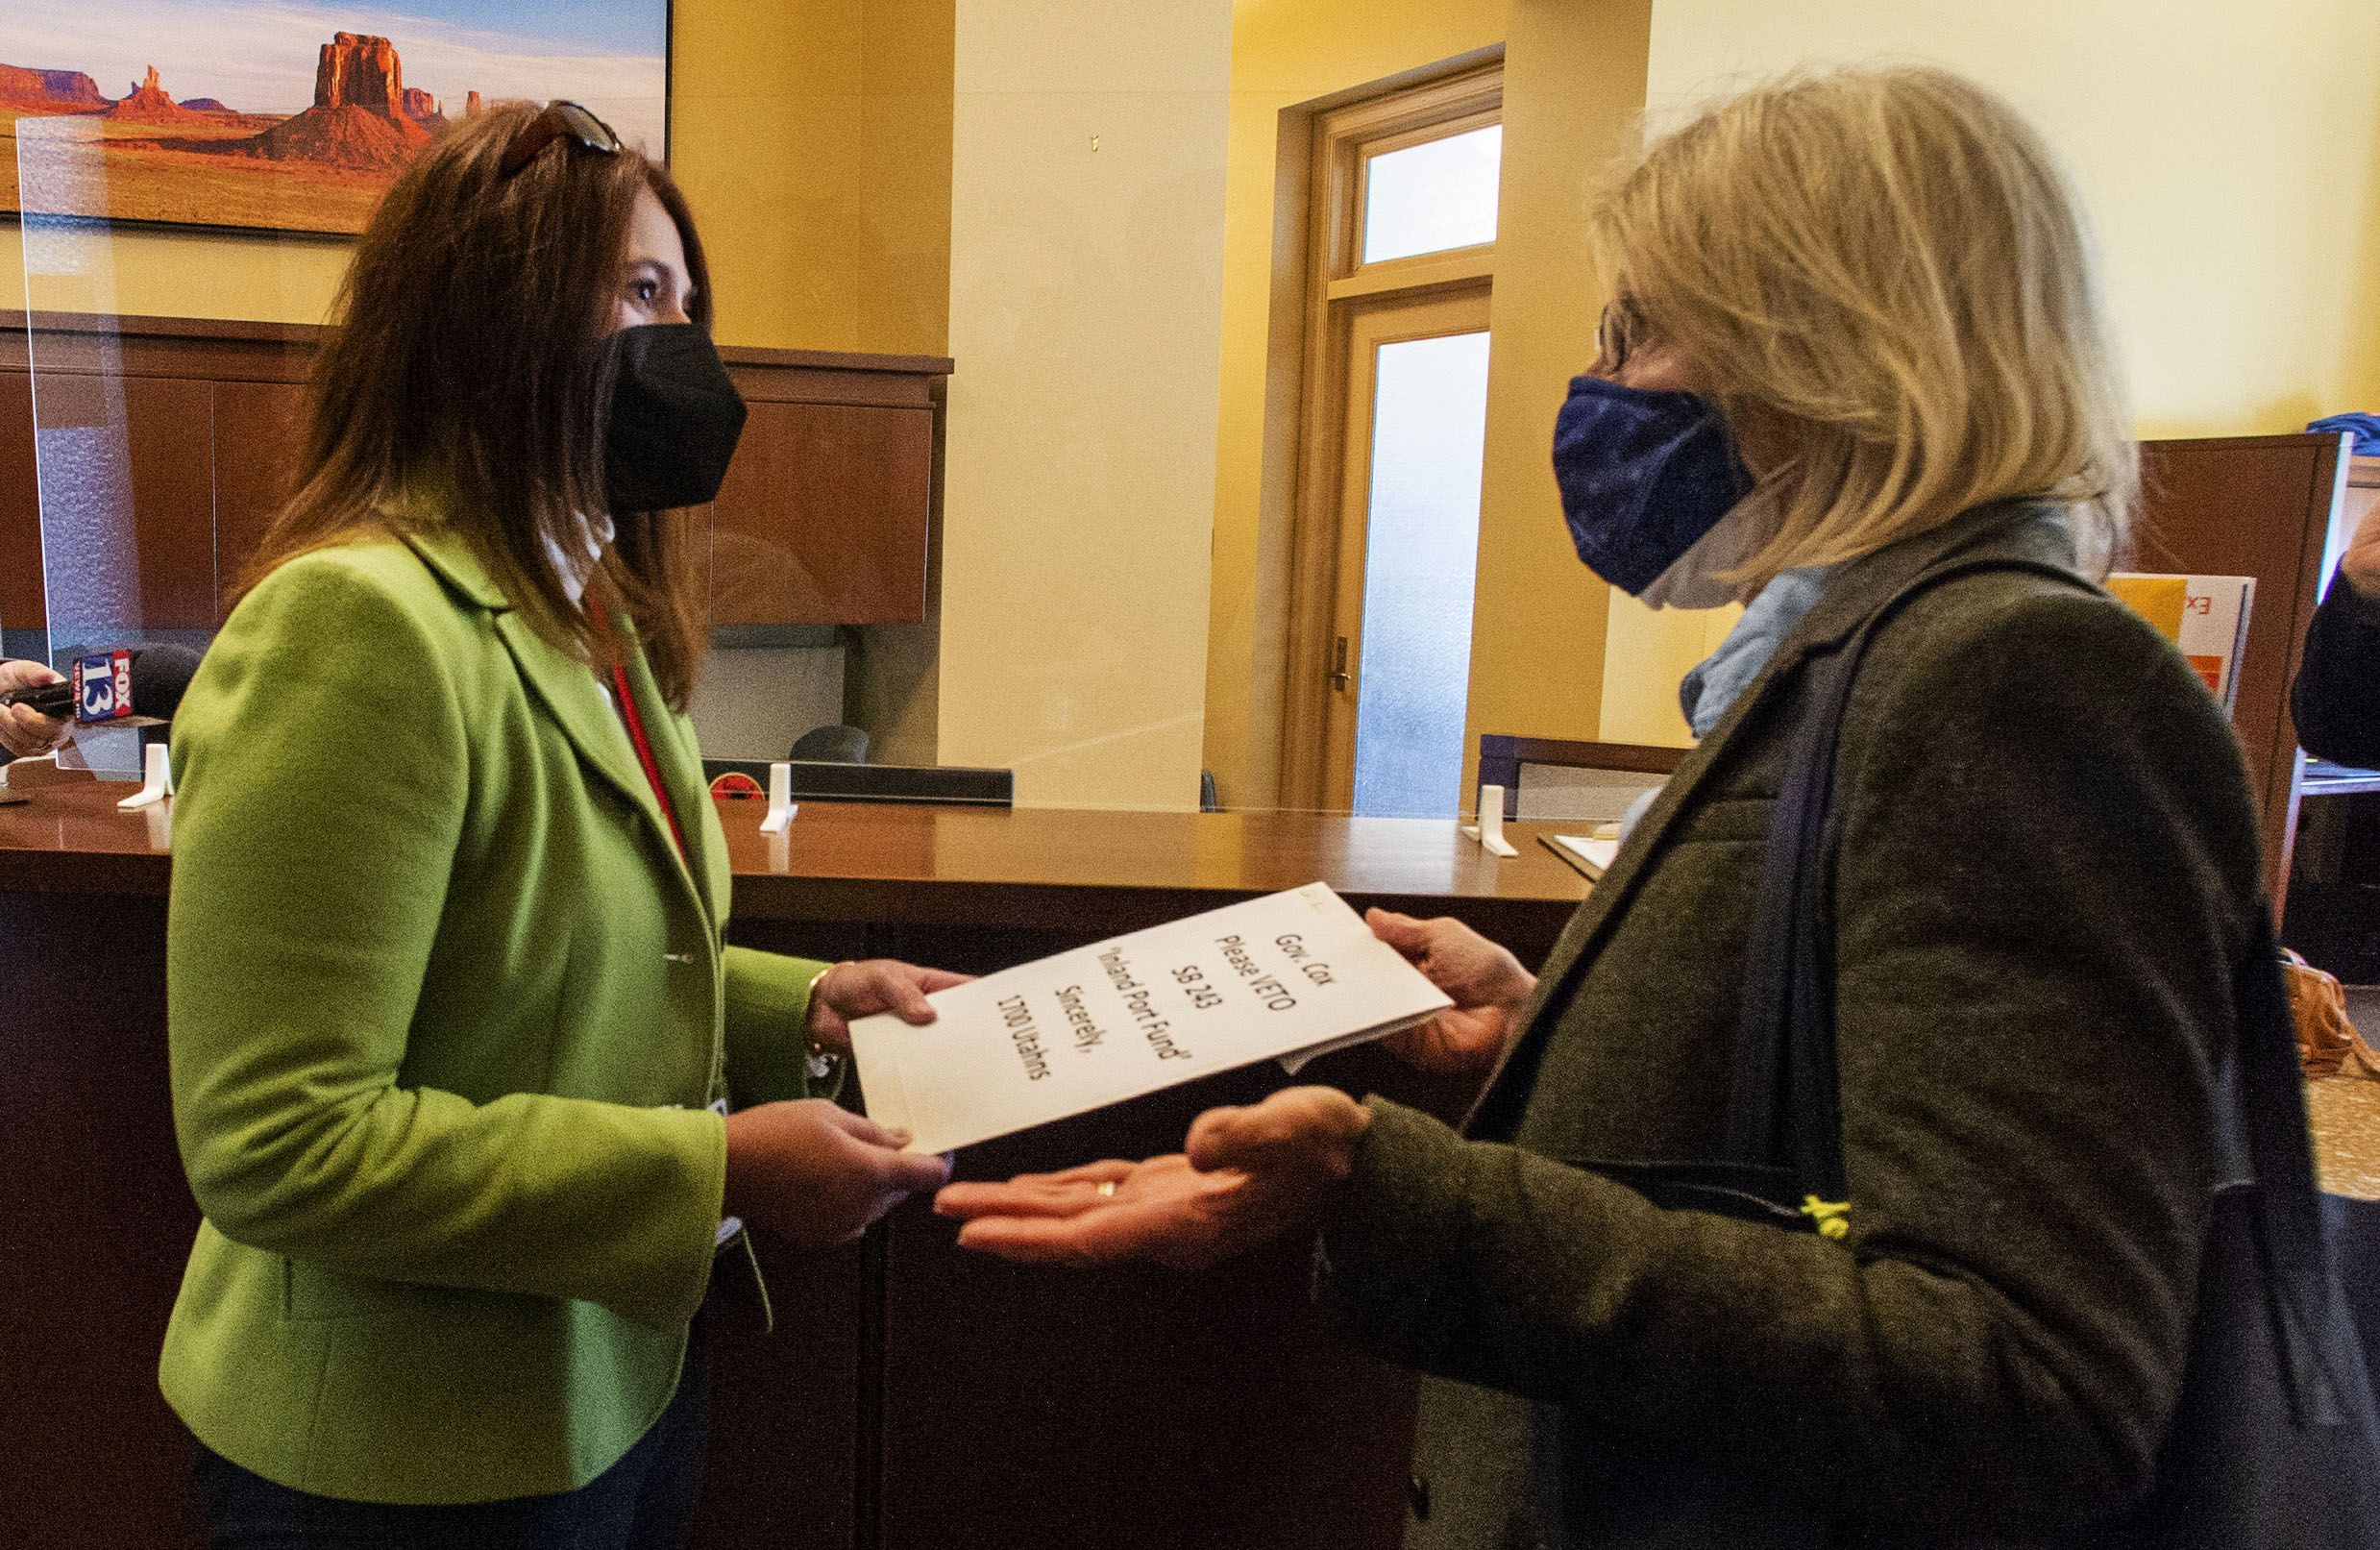 (Rick Egan | The Salt Lake Tribune)   Jennifer Napier-Pearce, senior advisor and director of communications to Utah Gov. Spencer Cox, accepts a letter from Sarah Buck signed by more than 1,700 people, urging Utah Gov. Spencer Cox to veto SB243, at the Capitol on Wednesday, March 17, 2021.